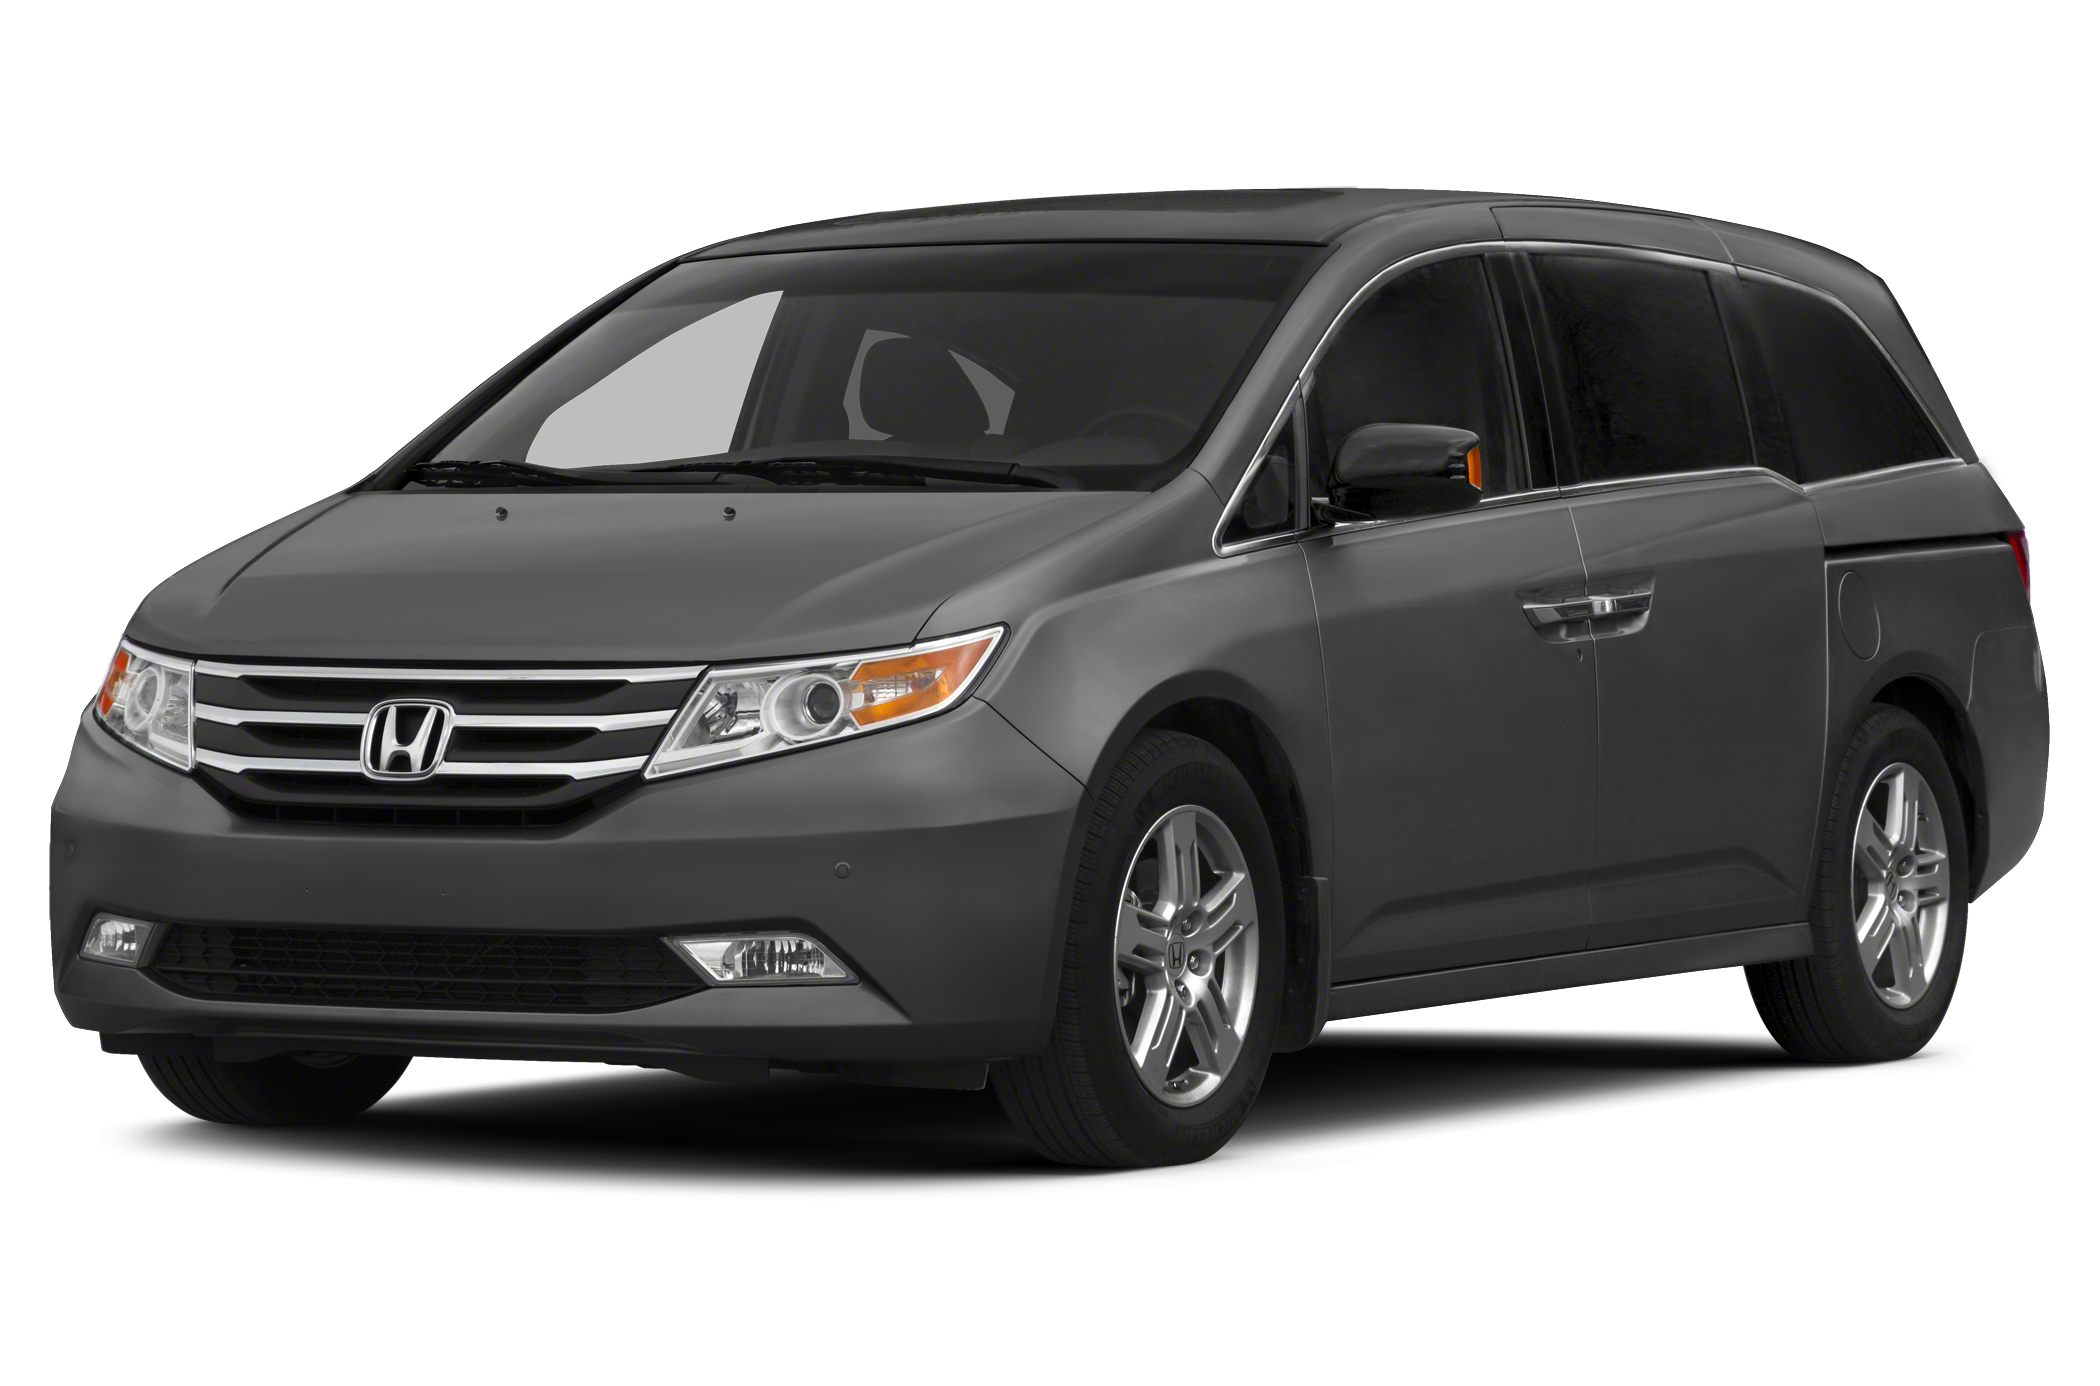 2013 Honda Odyssey LX Minivan for sale in Tifton for $24,995 with 29,146 miles.